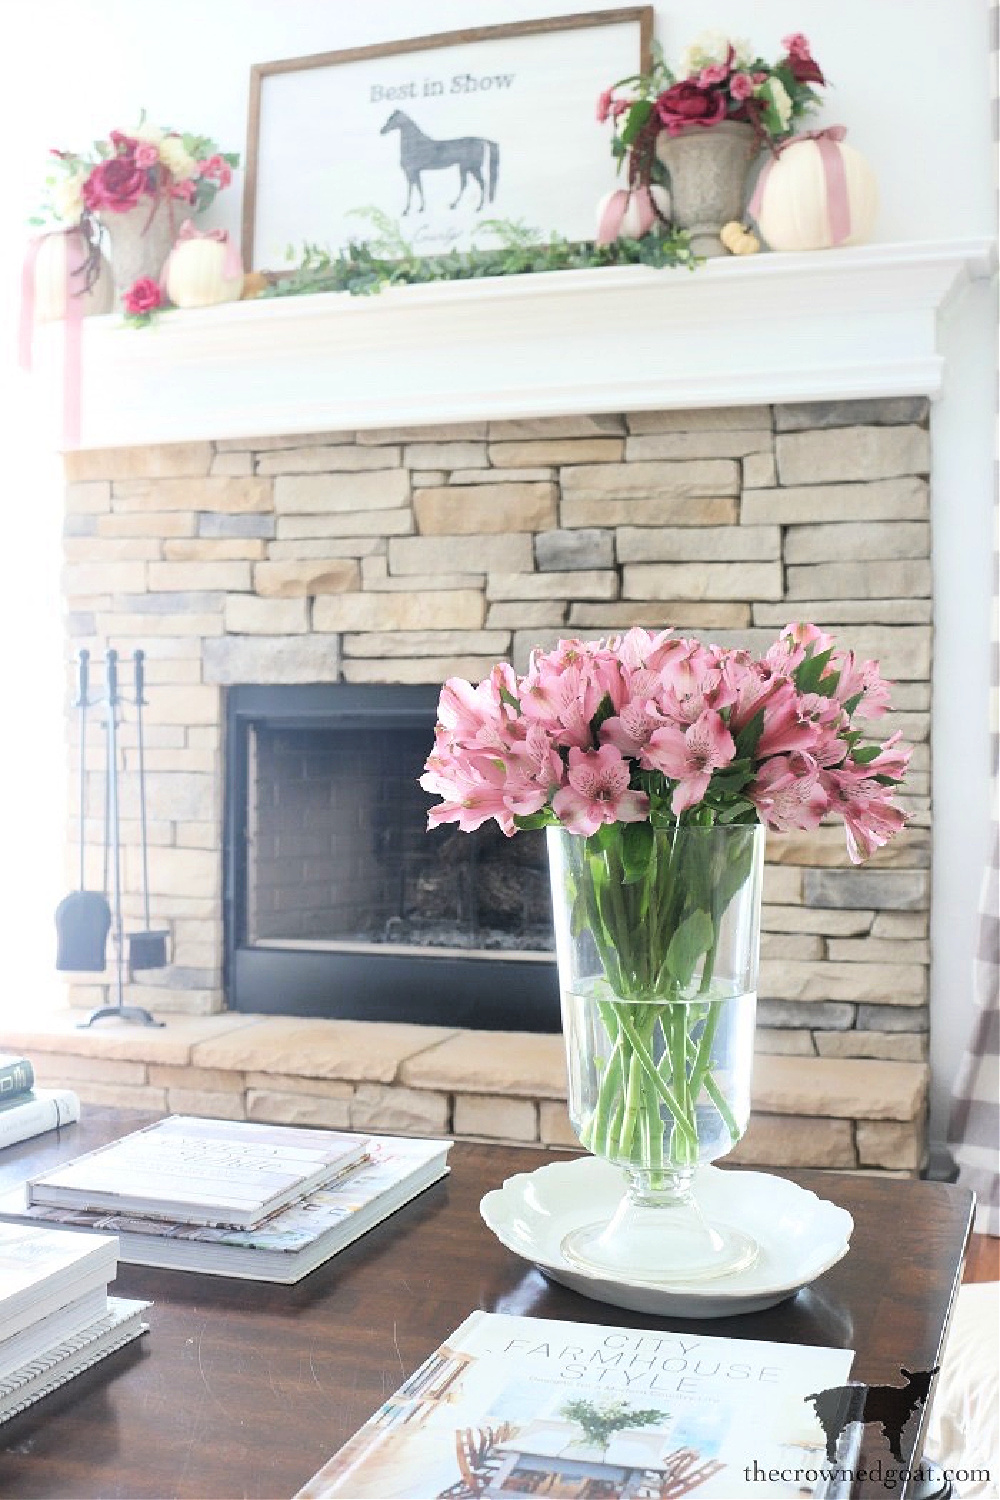 Simple Things You Can Do Now to Prepare for the Holidays-Fall Mantel Ideas-The Crowned Goat